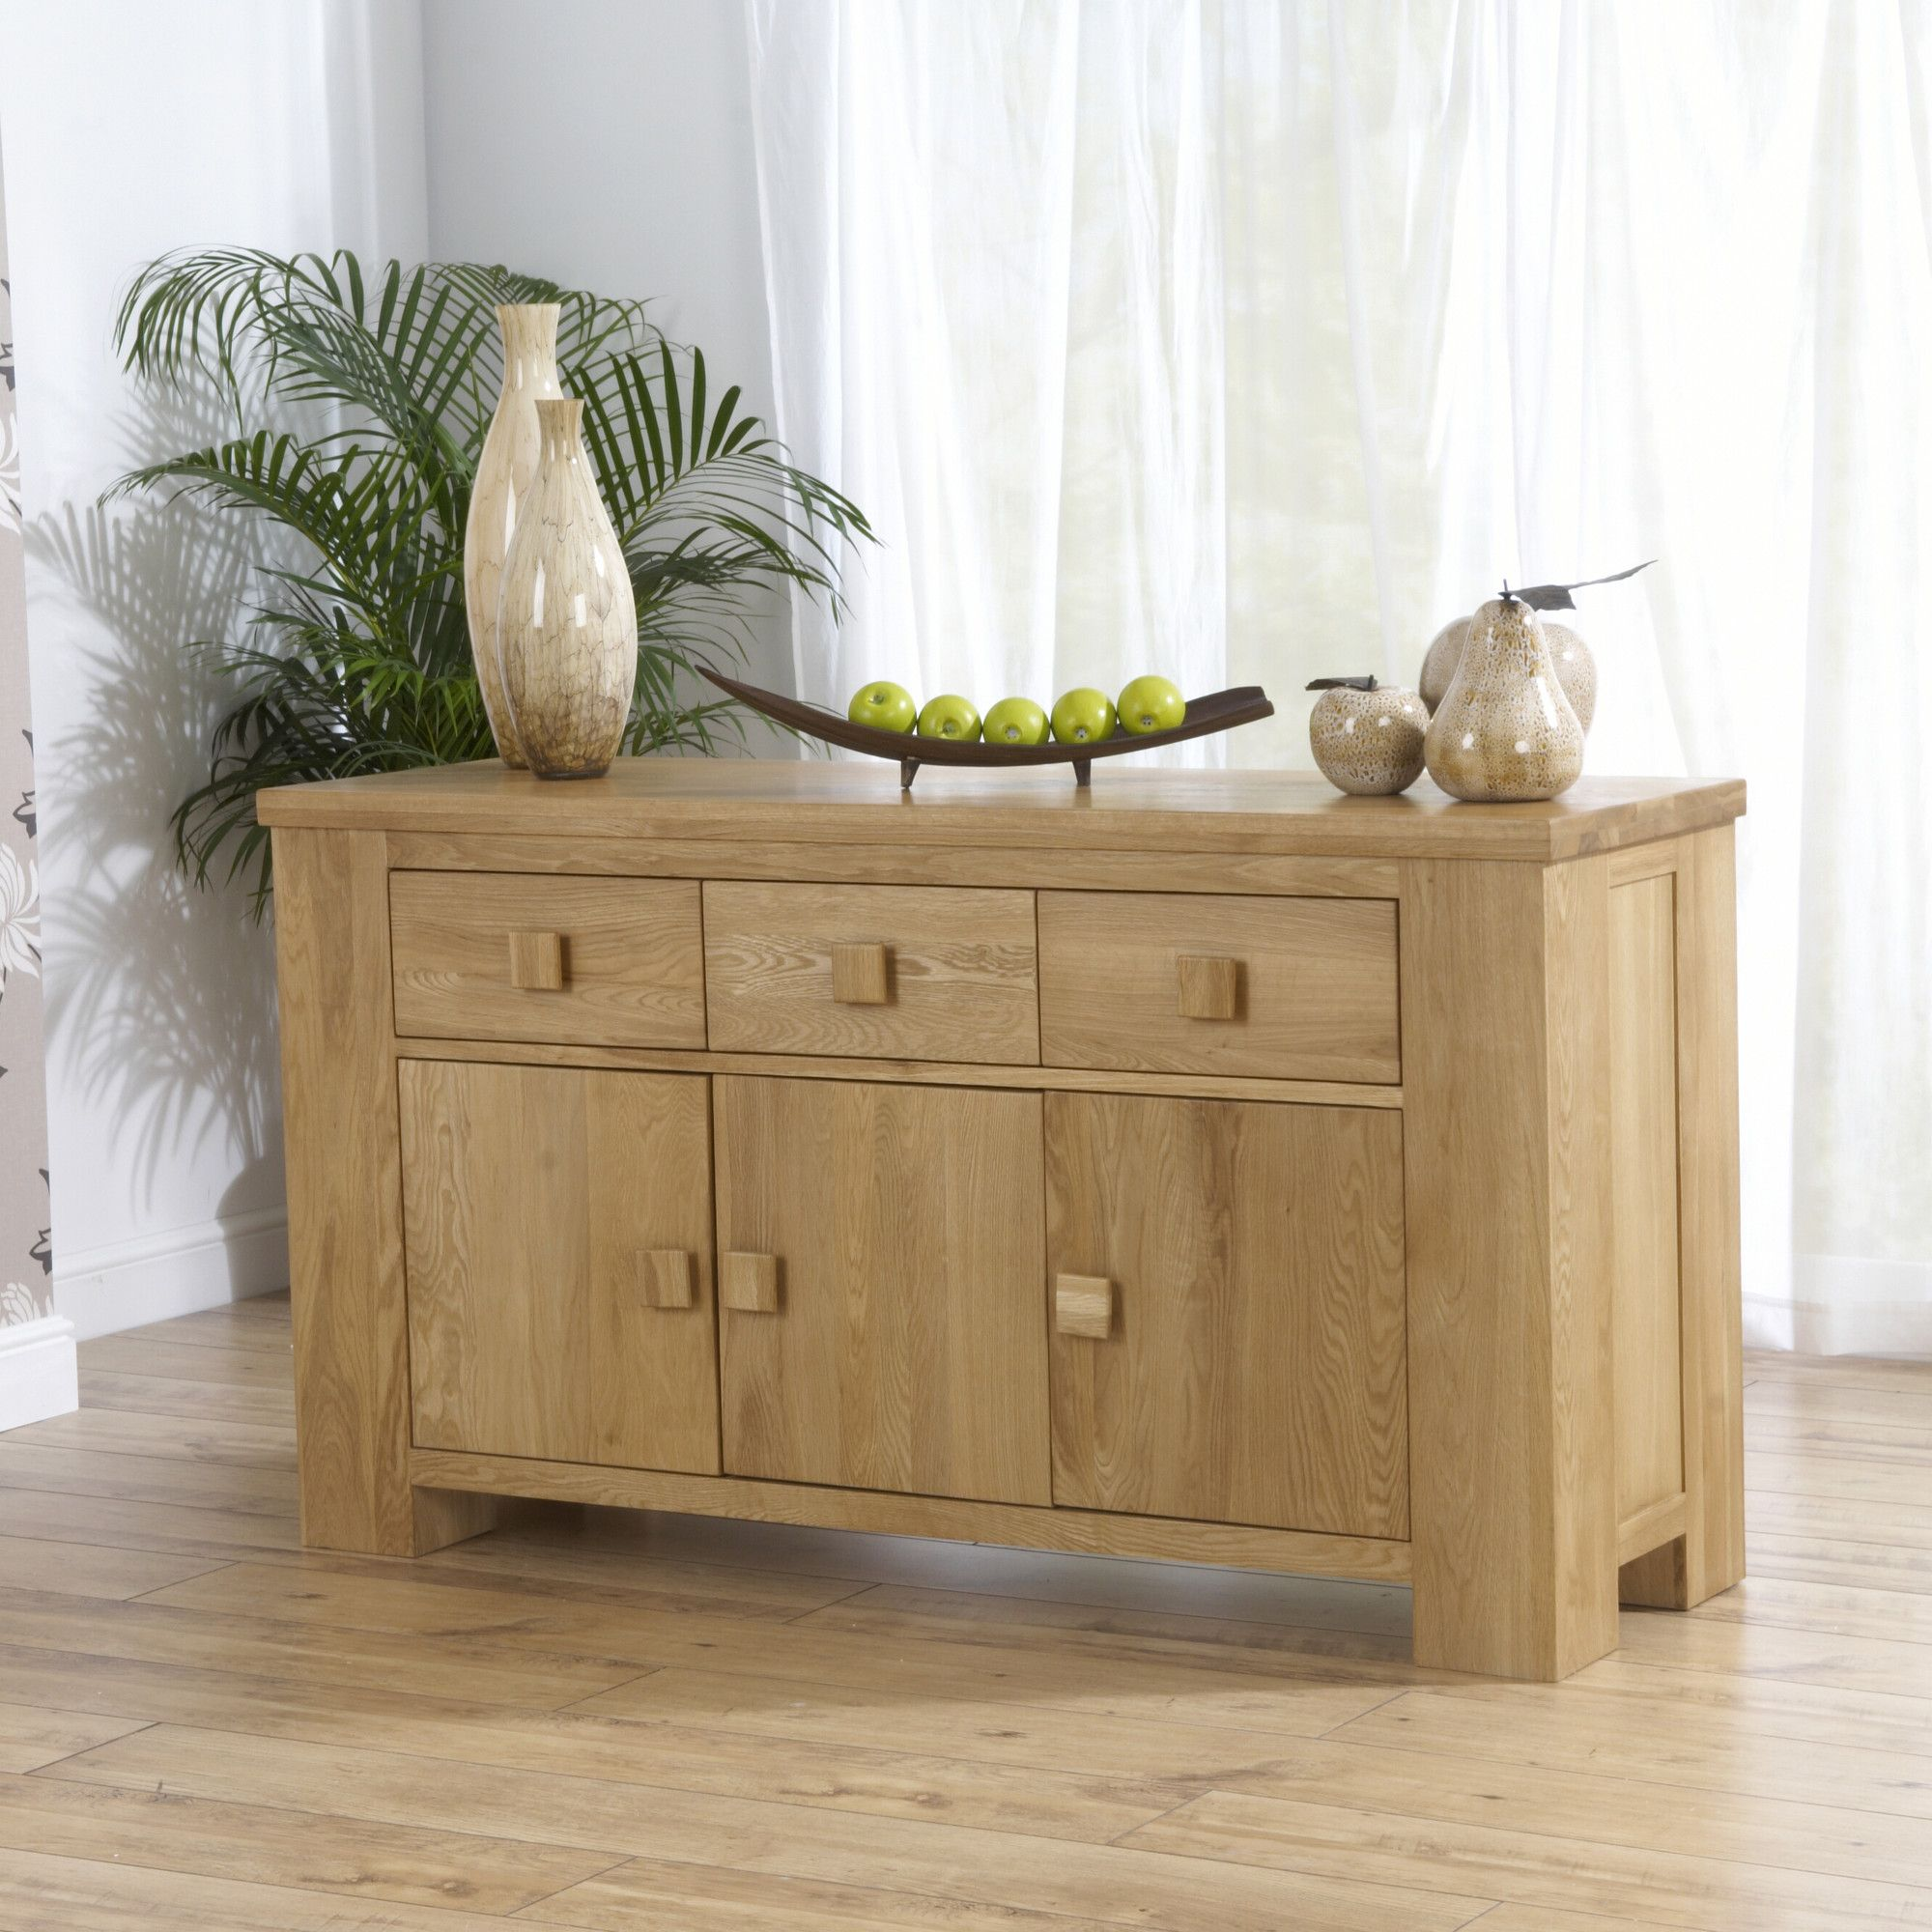 Mark Harris Furniture Barcelona Three Doors Sideboard at Tesco Direct